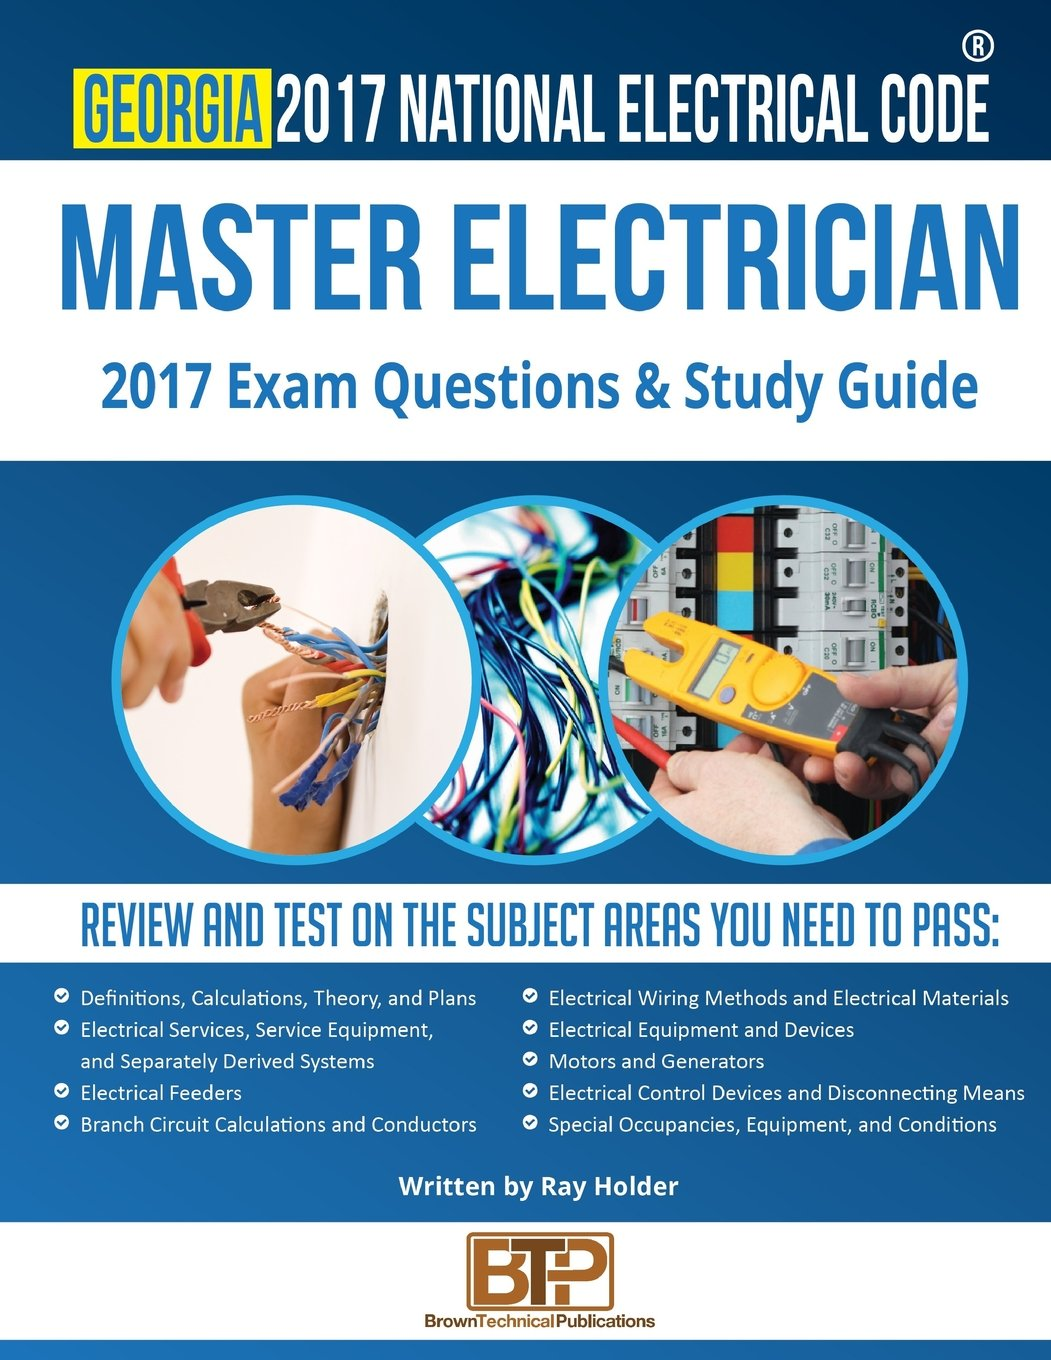 Georgia 2017 Master Electrician Study Guide: Ray Holder, Brown Technical  Publications: 9781945660771: Amazon.com: Books